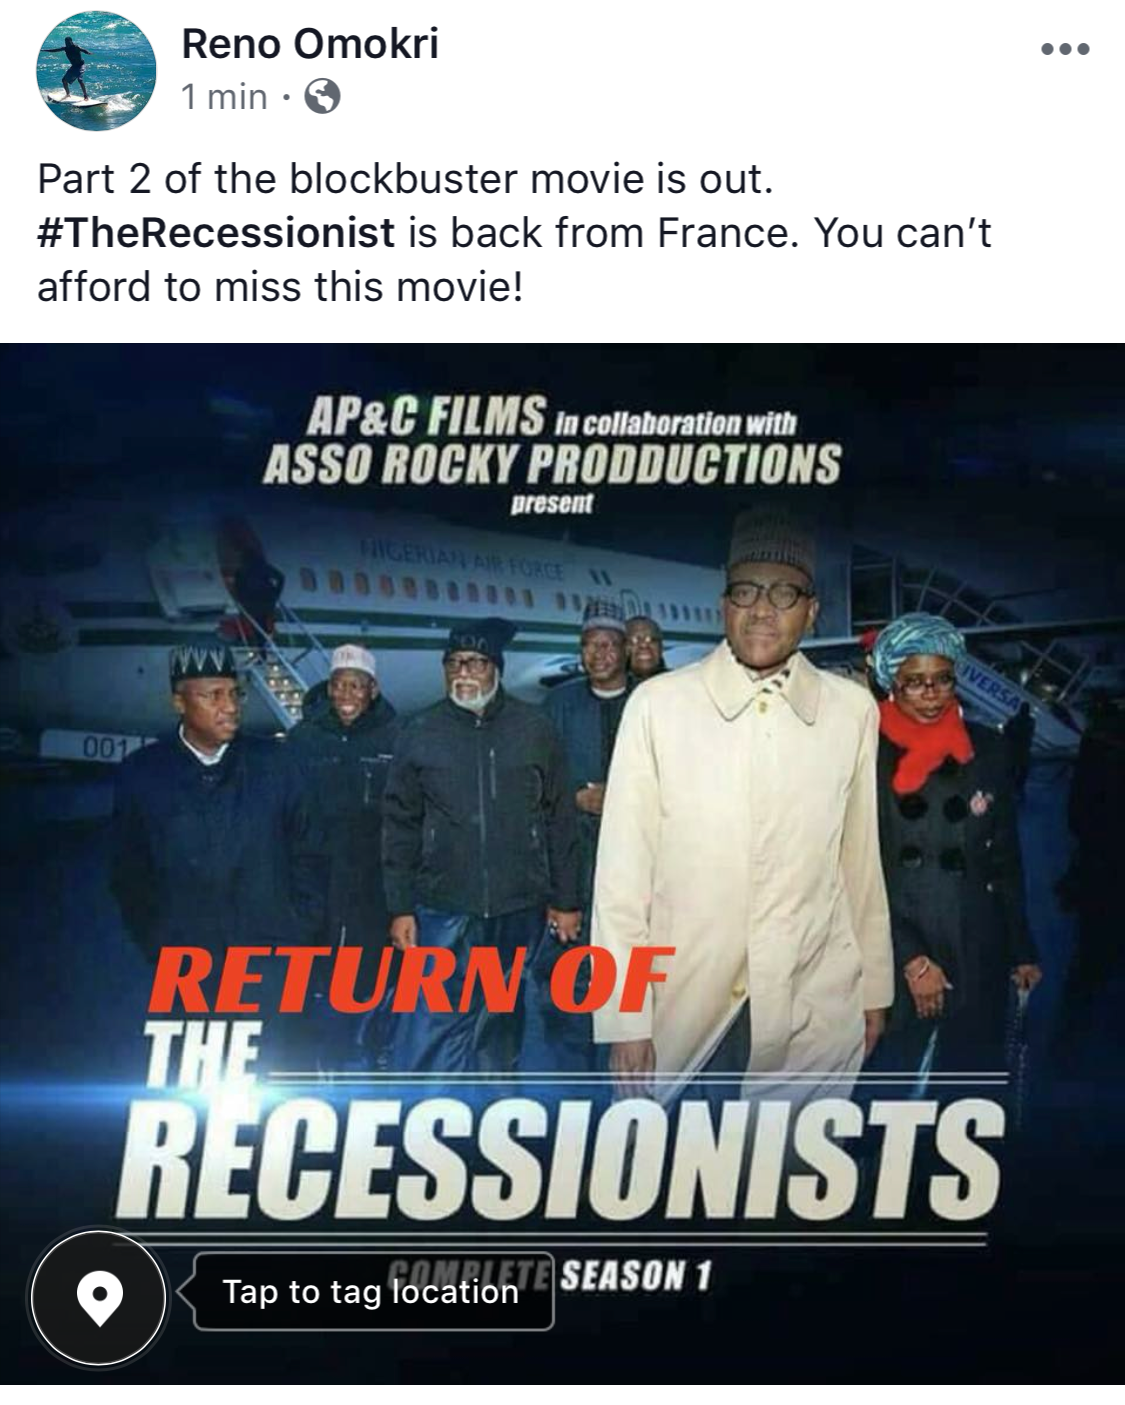 Part 2: The Recessionists Are Back From France - Reno Omokri